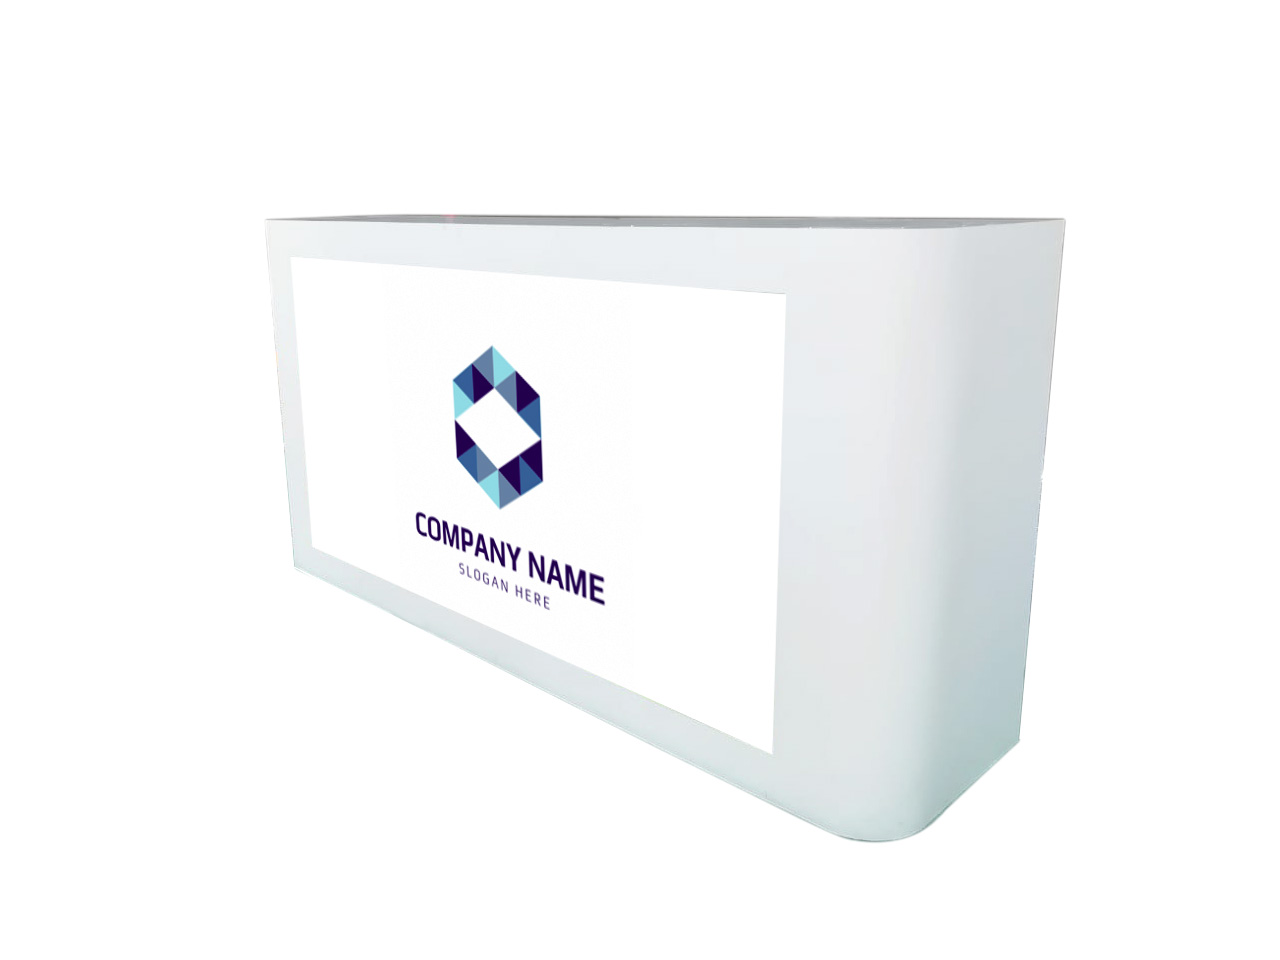 Information desk with logo, lightbox and lockable doors